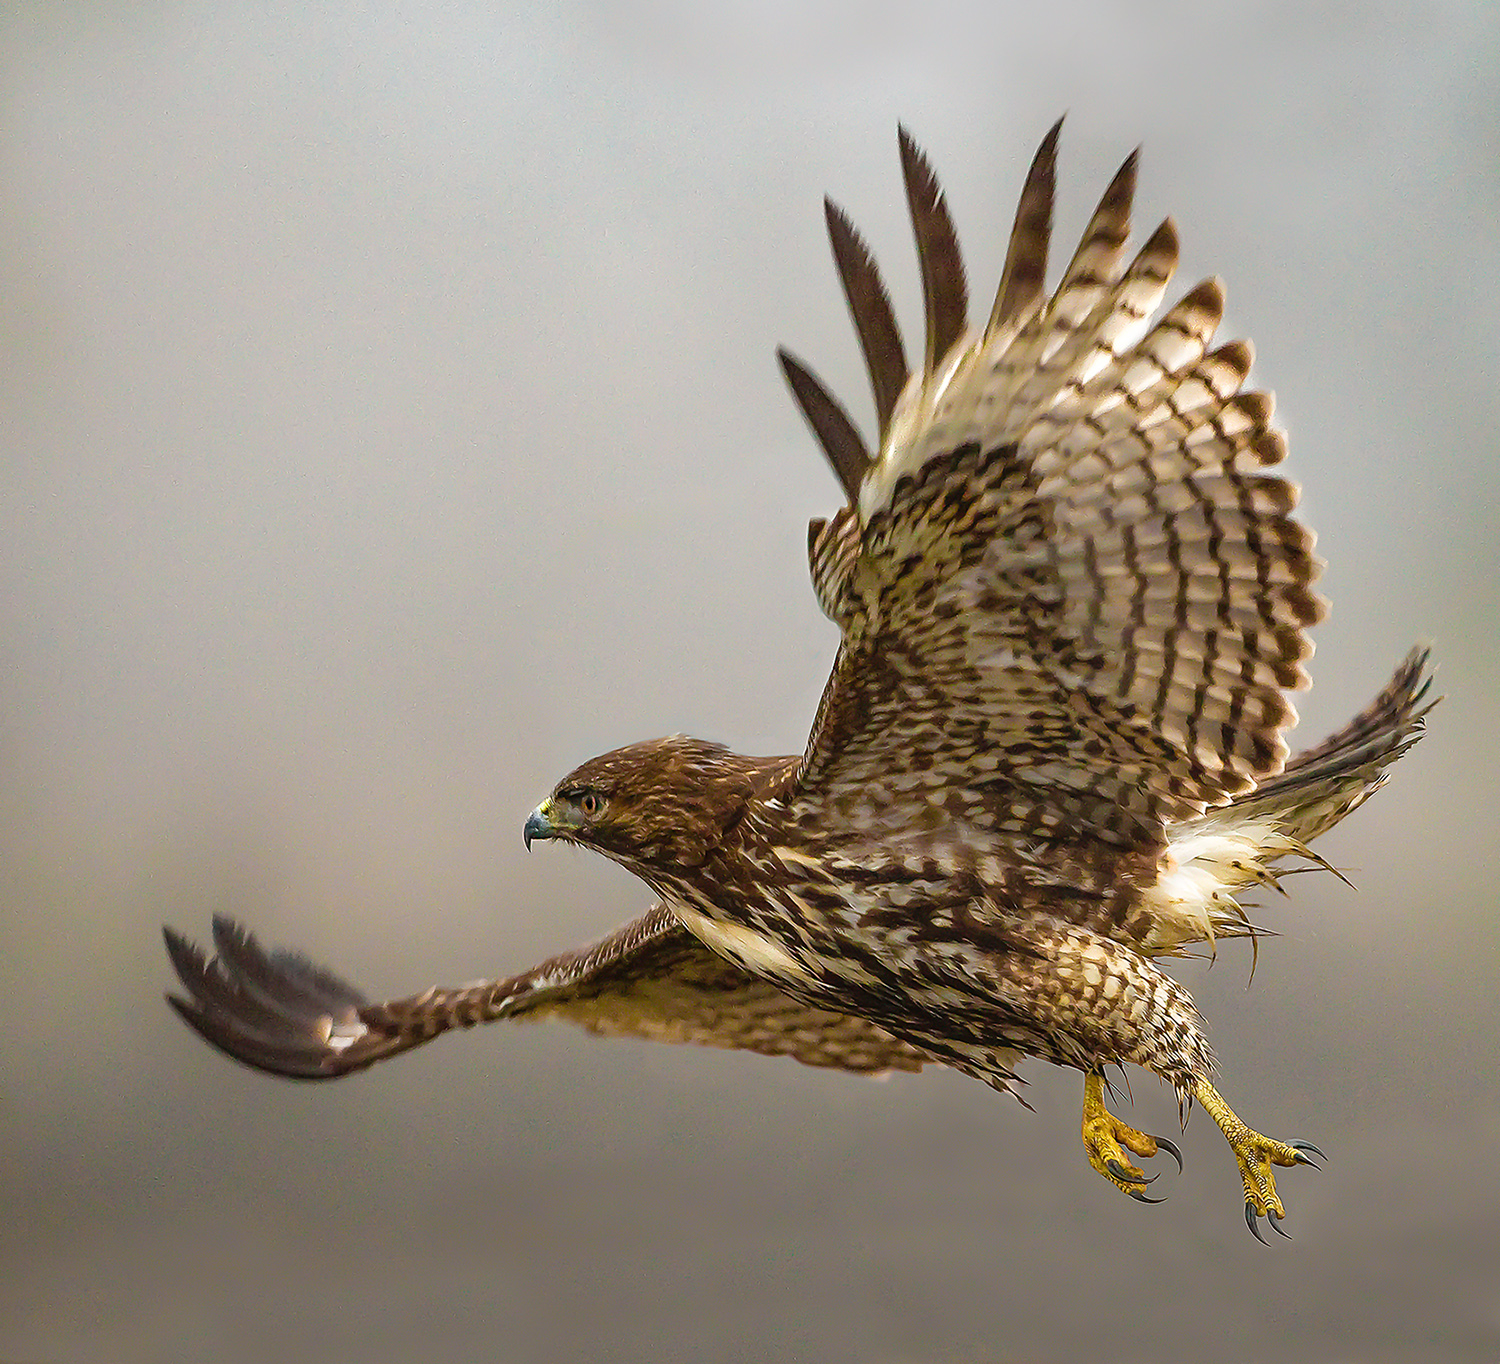 Photo of red-tailed hawk in flight by David Wong